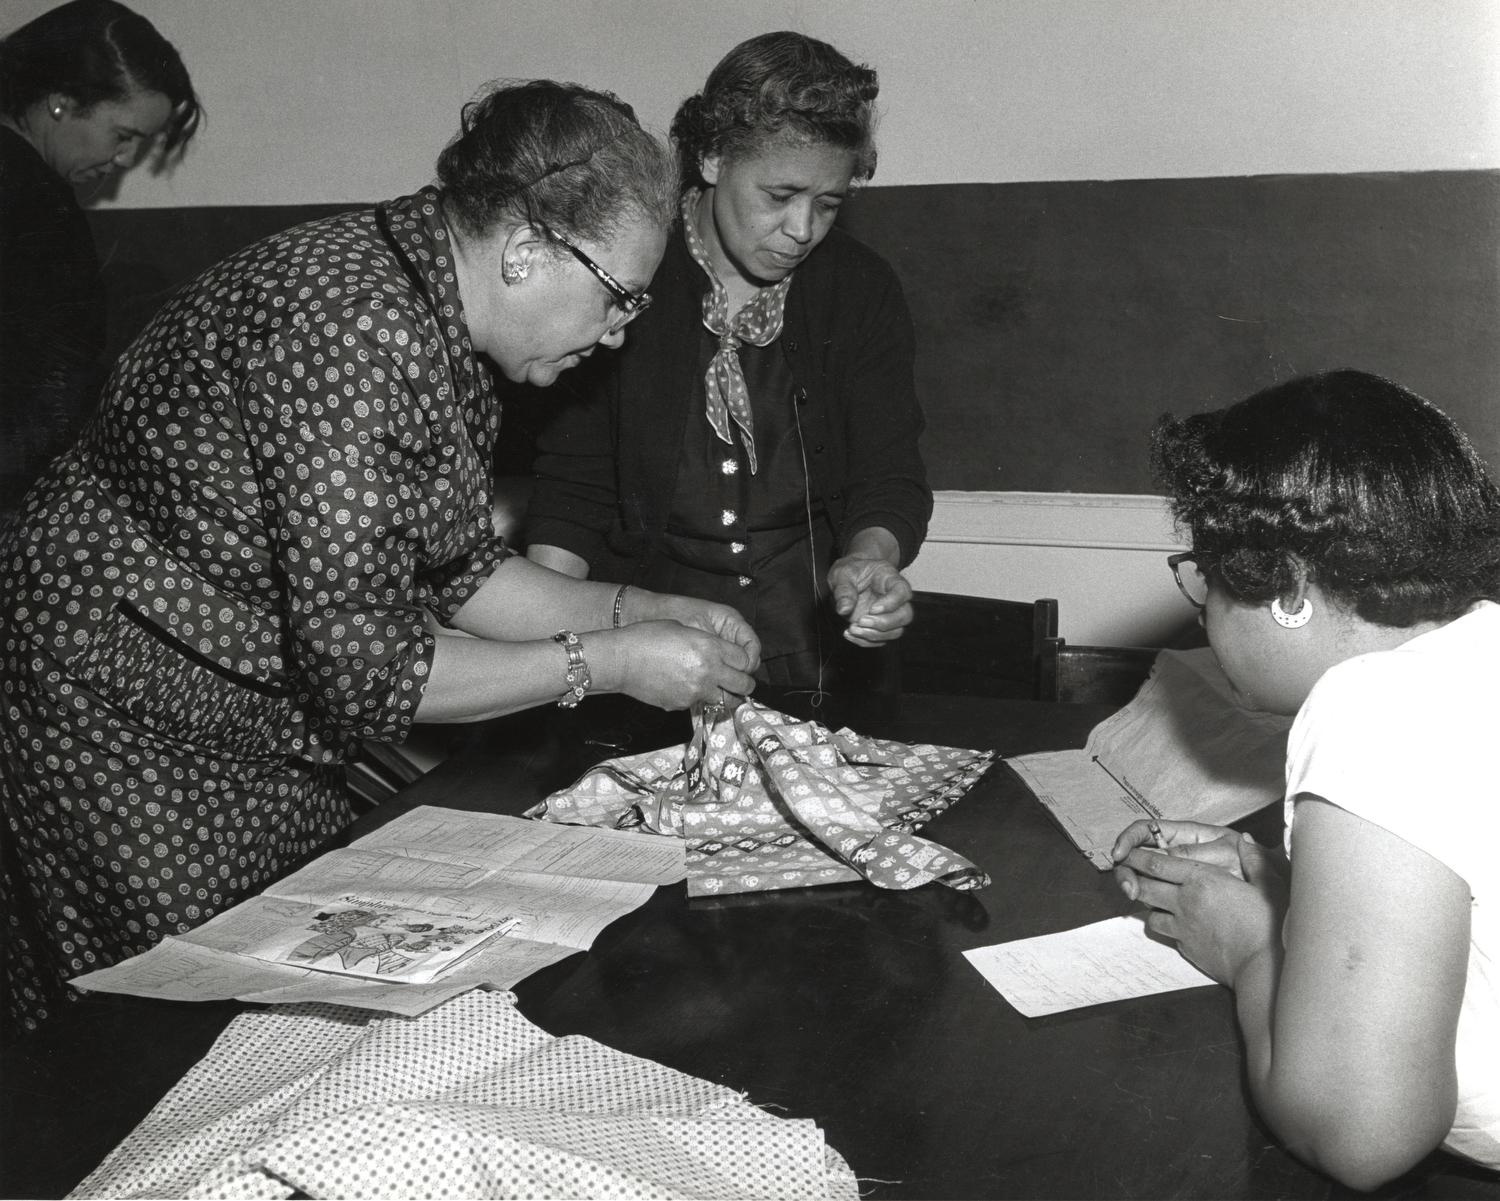 Older African American women working on sewing projects